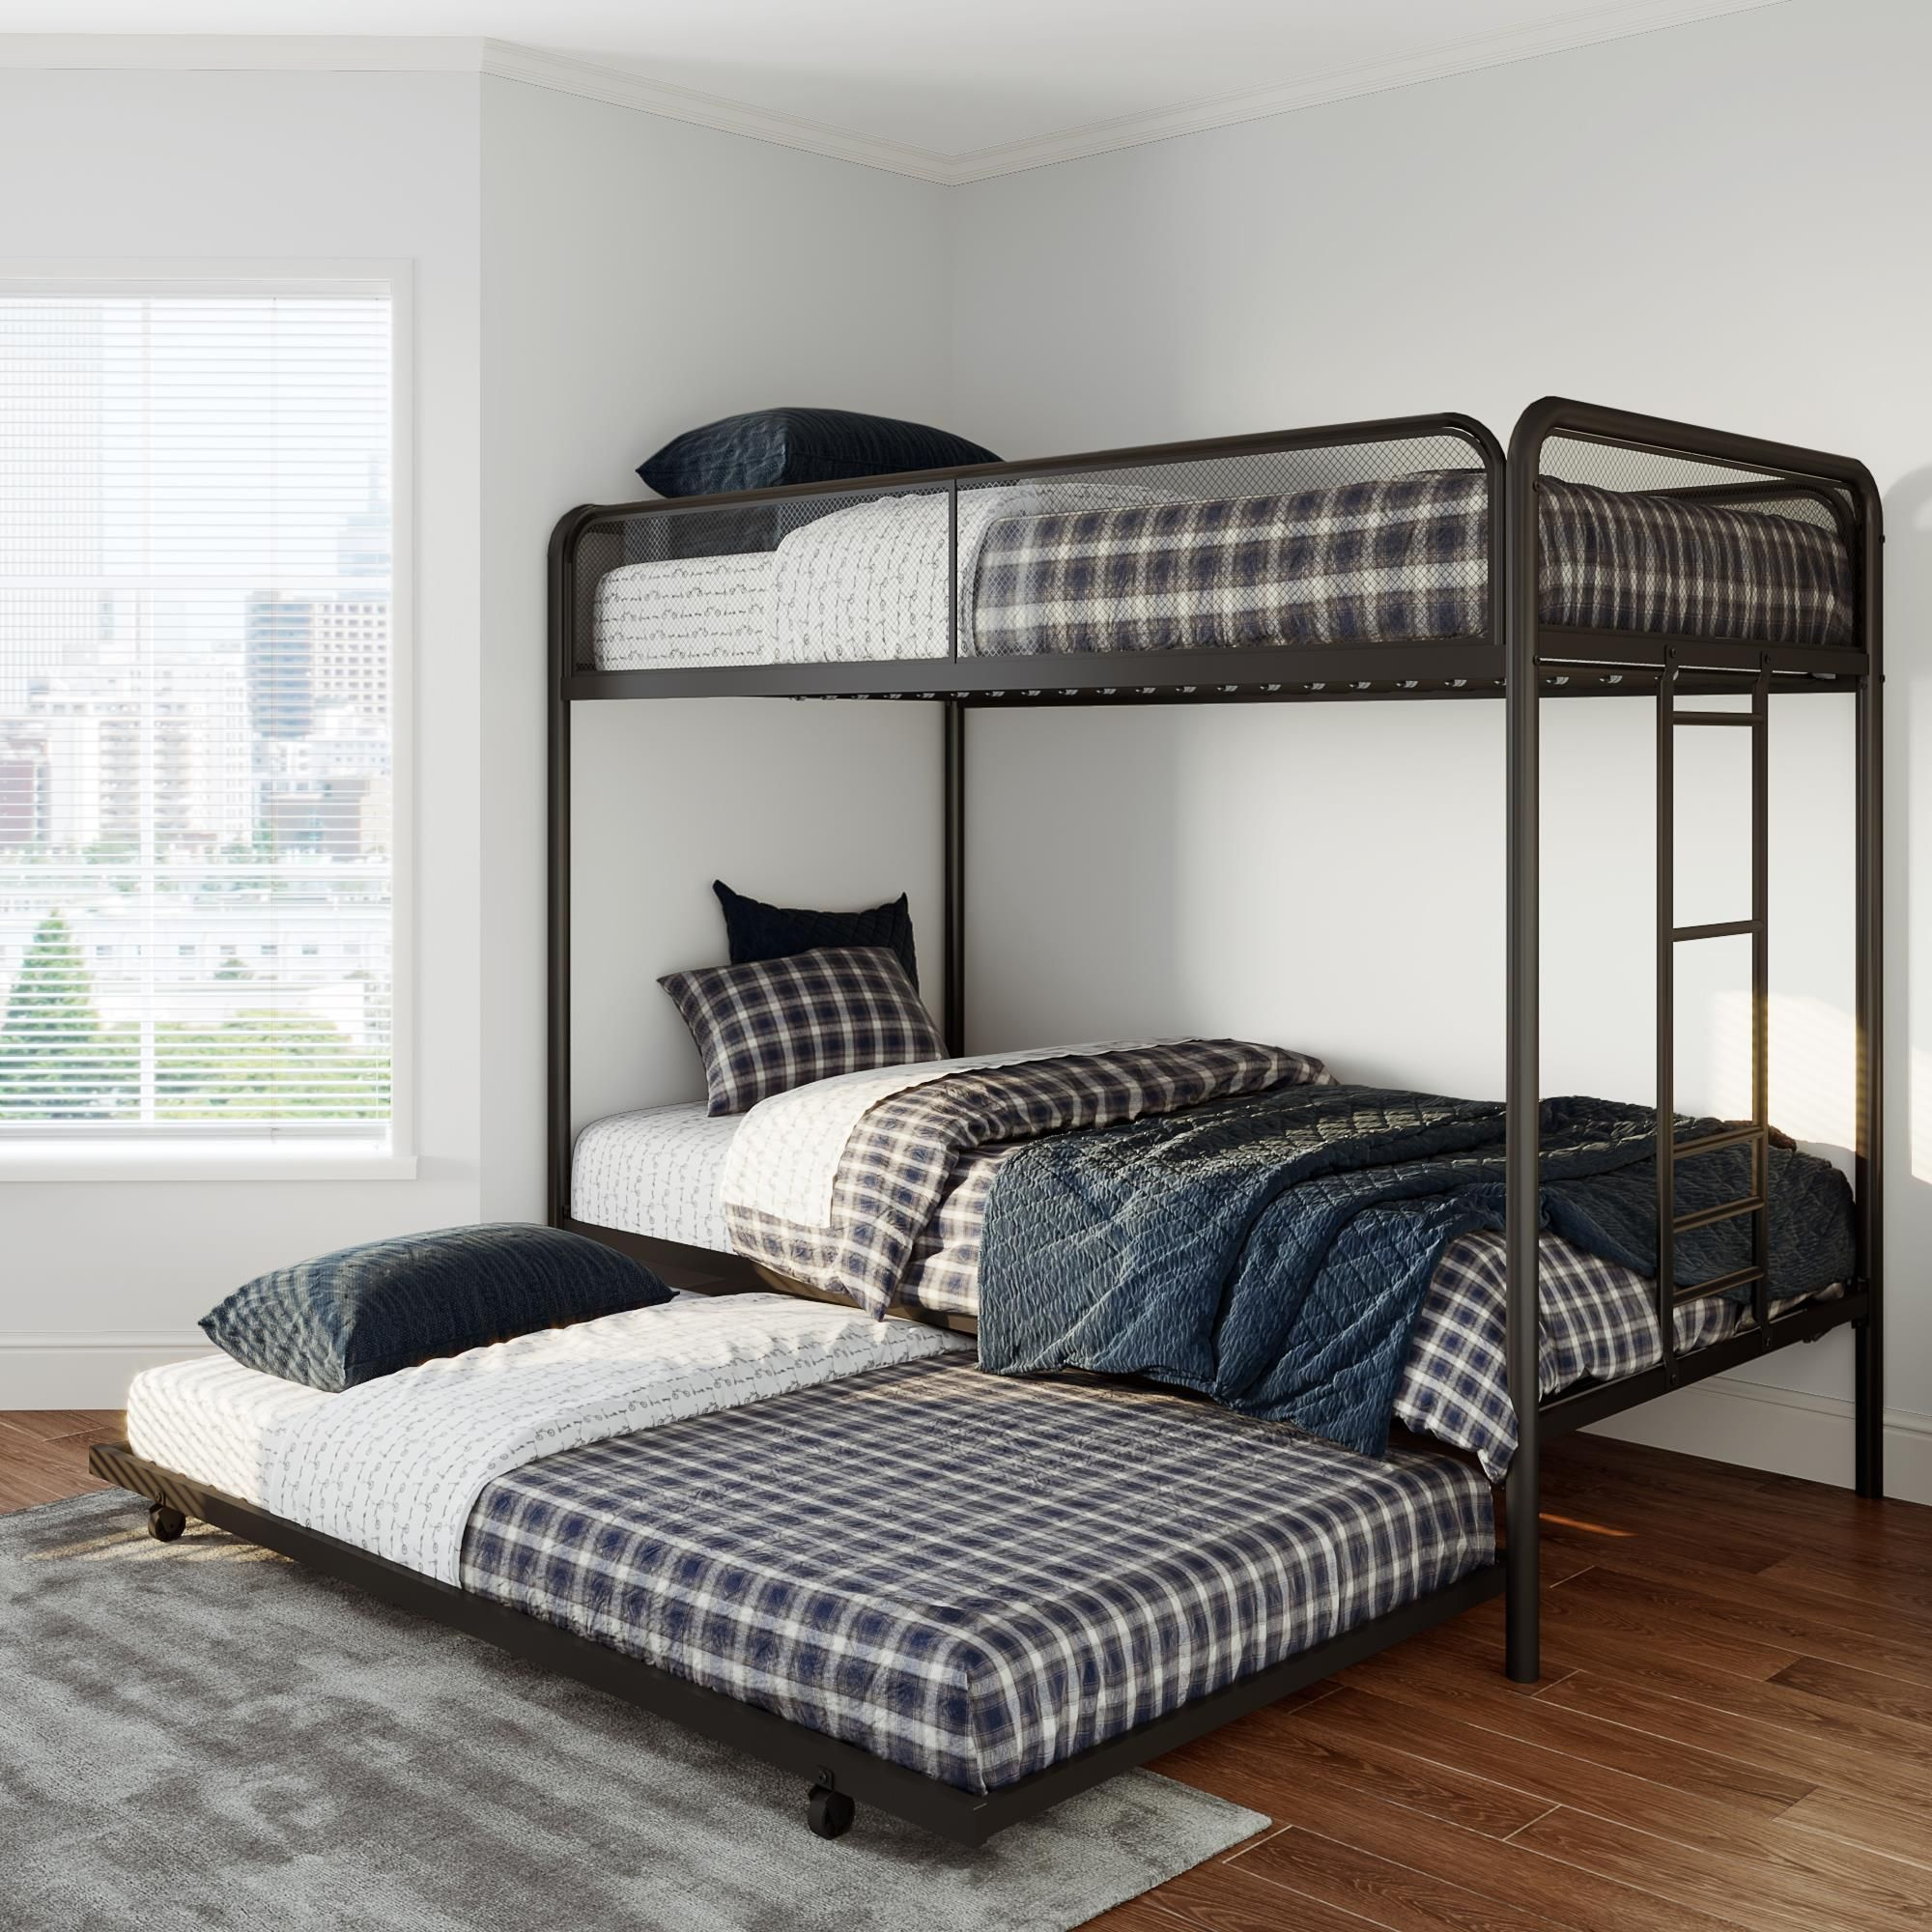 Best Shop By Brand In 2020 Bunk Bed With Trundle Metal Bunk Beds 640 x 480